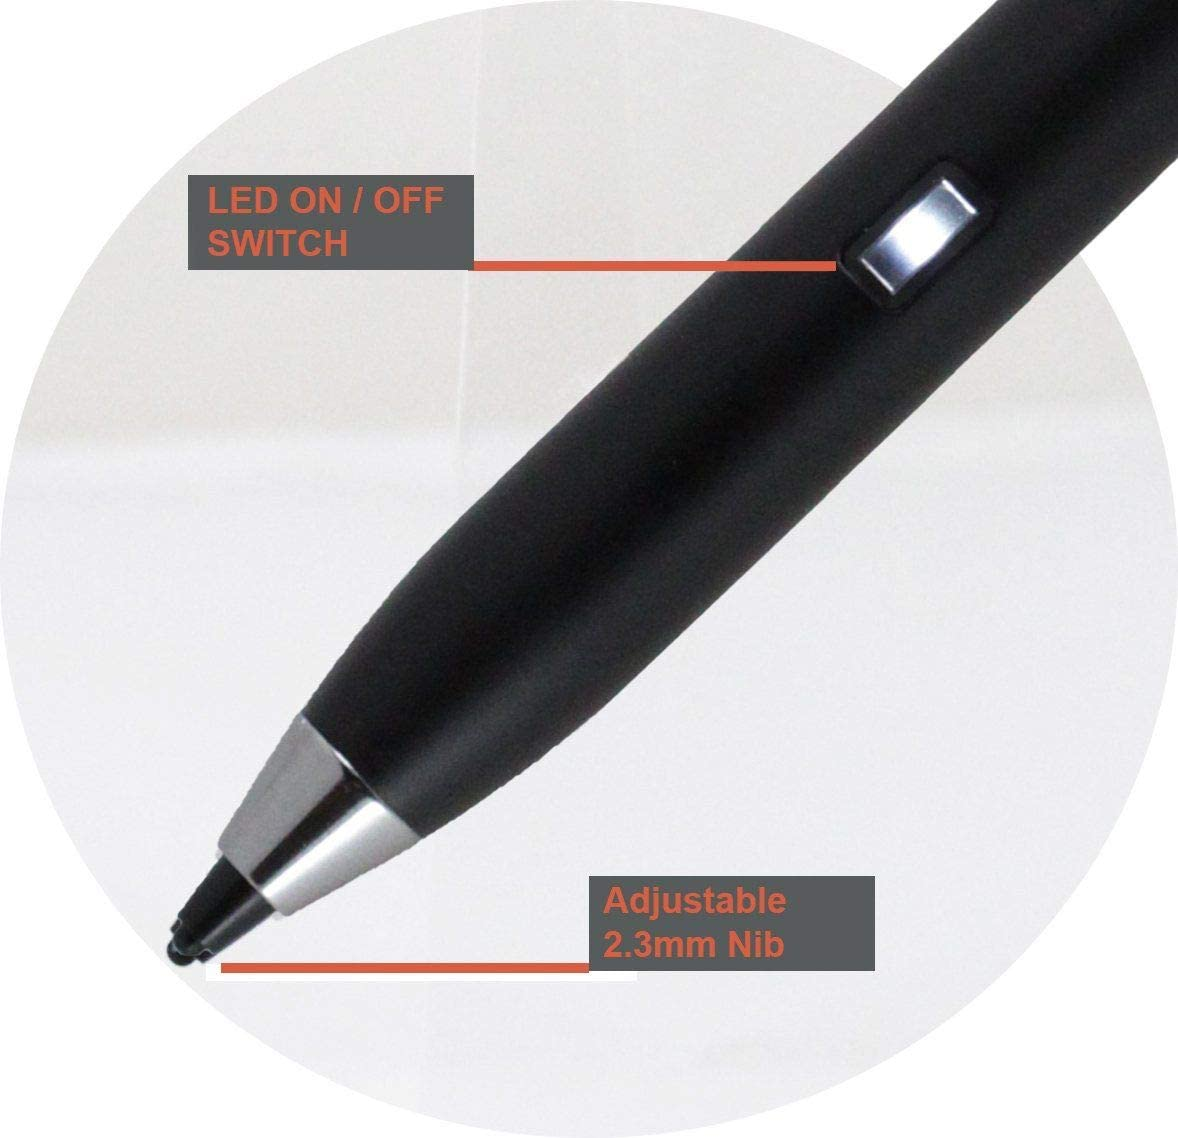 Fusion5 10.1 Android 8.1 Oreo Tablet Broonel Black Fine Point Digital Active Stylus Pen Compatible with The Fusion5 9.6 Fusion5 4G Tablet